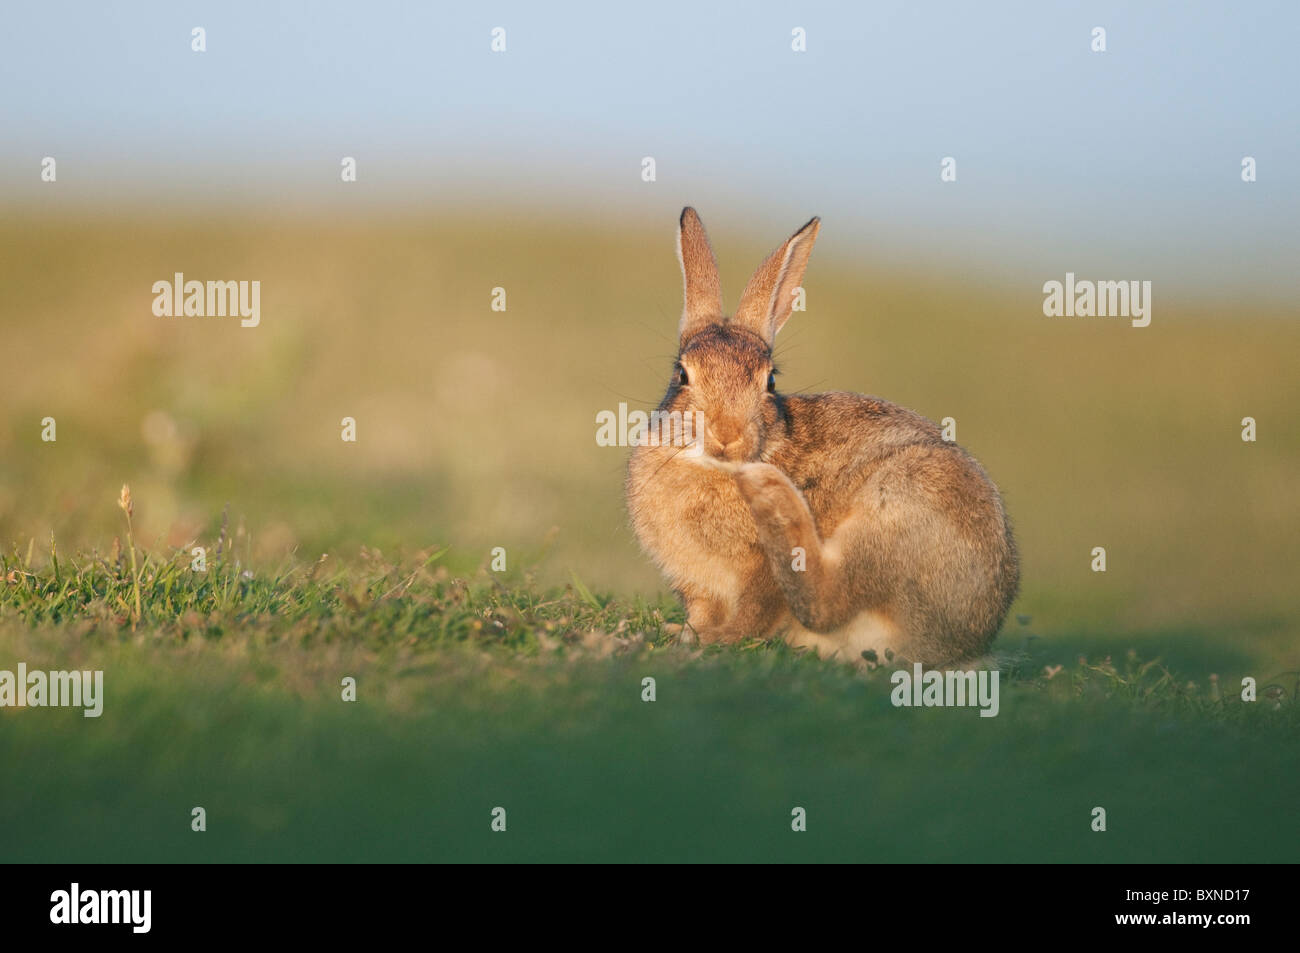 European Rabbit (Oryctolagus cuniculus). Young grooming in evening sunlight, North Kent Marshes, Kent, England. - Stock Image